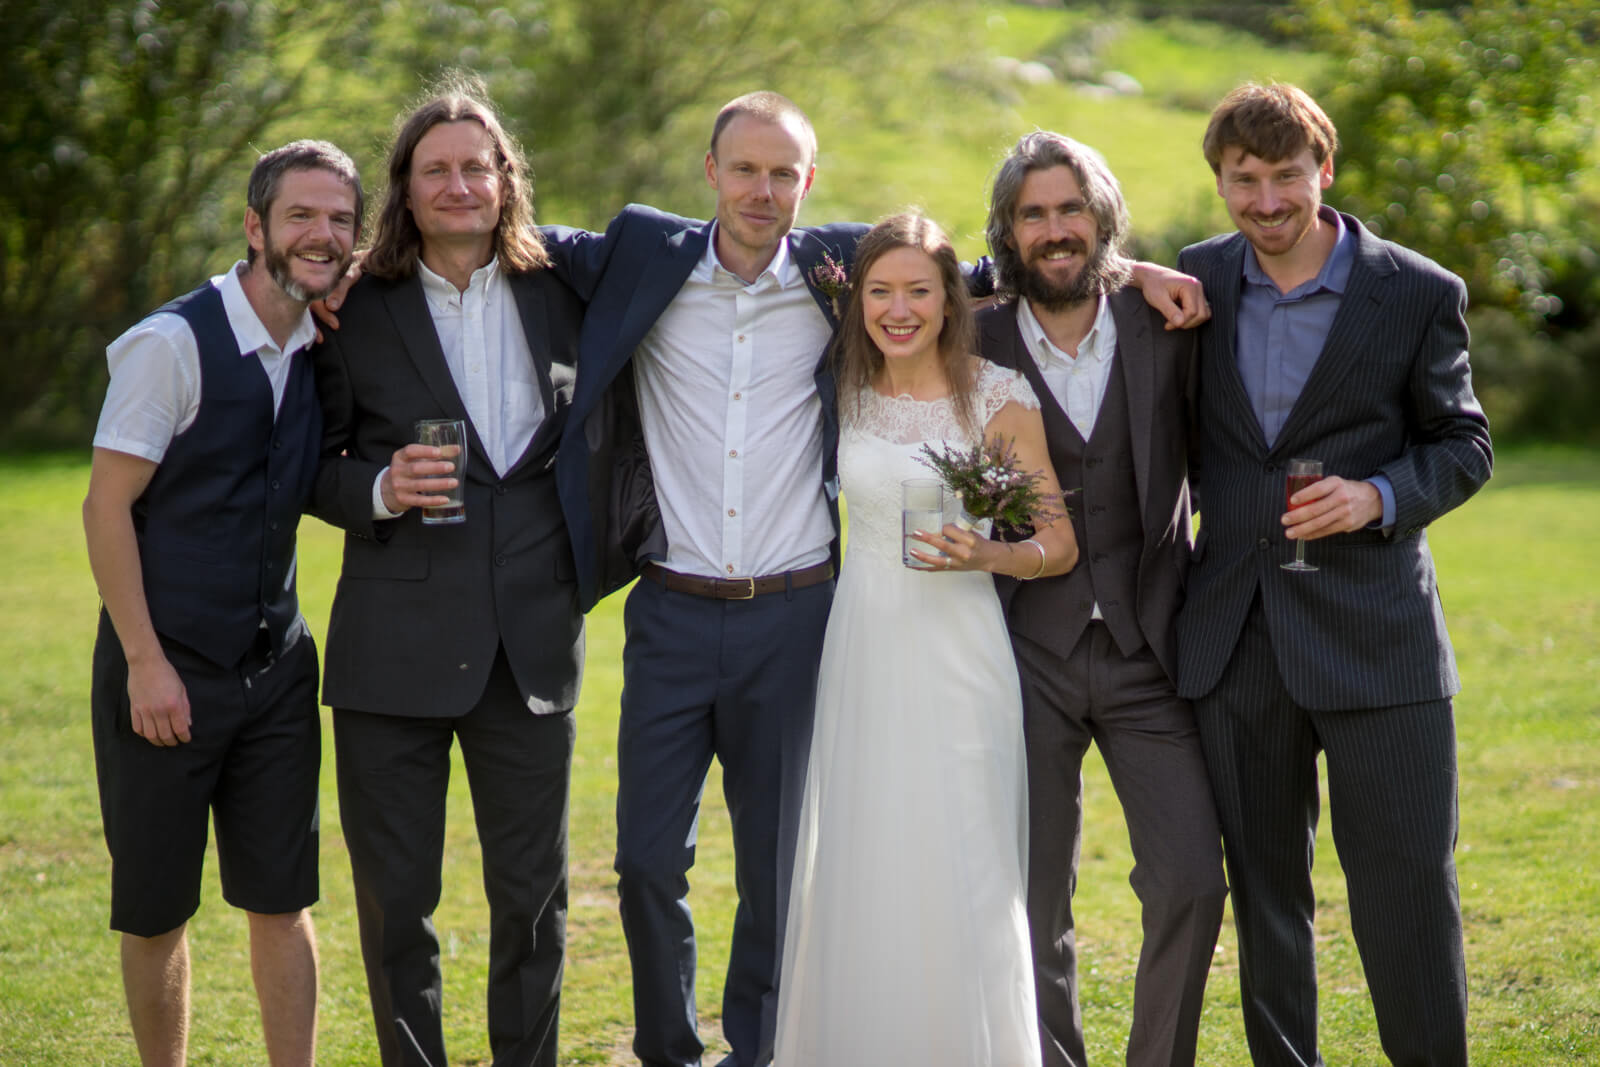 Bride and groom with arms around four groomsmen